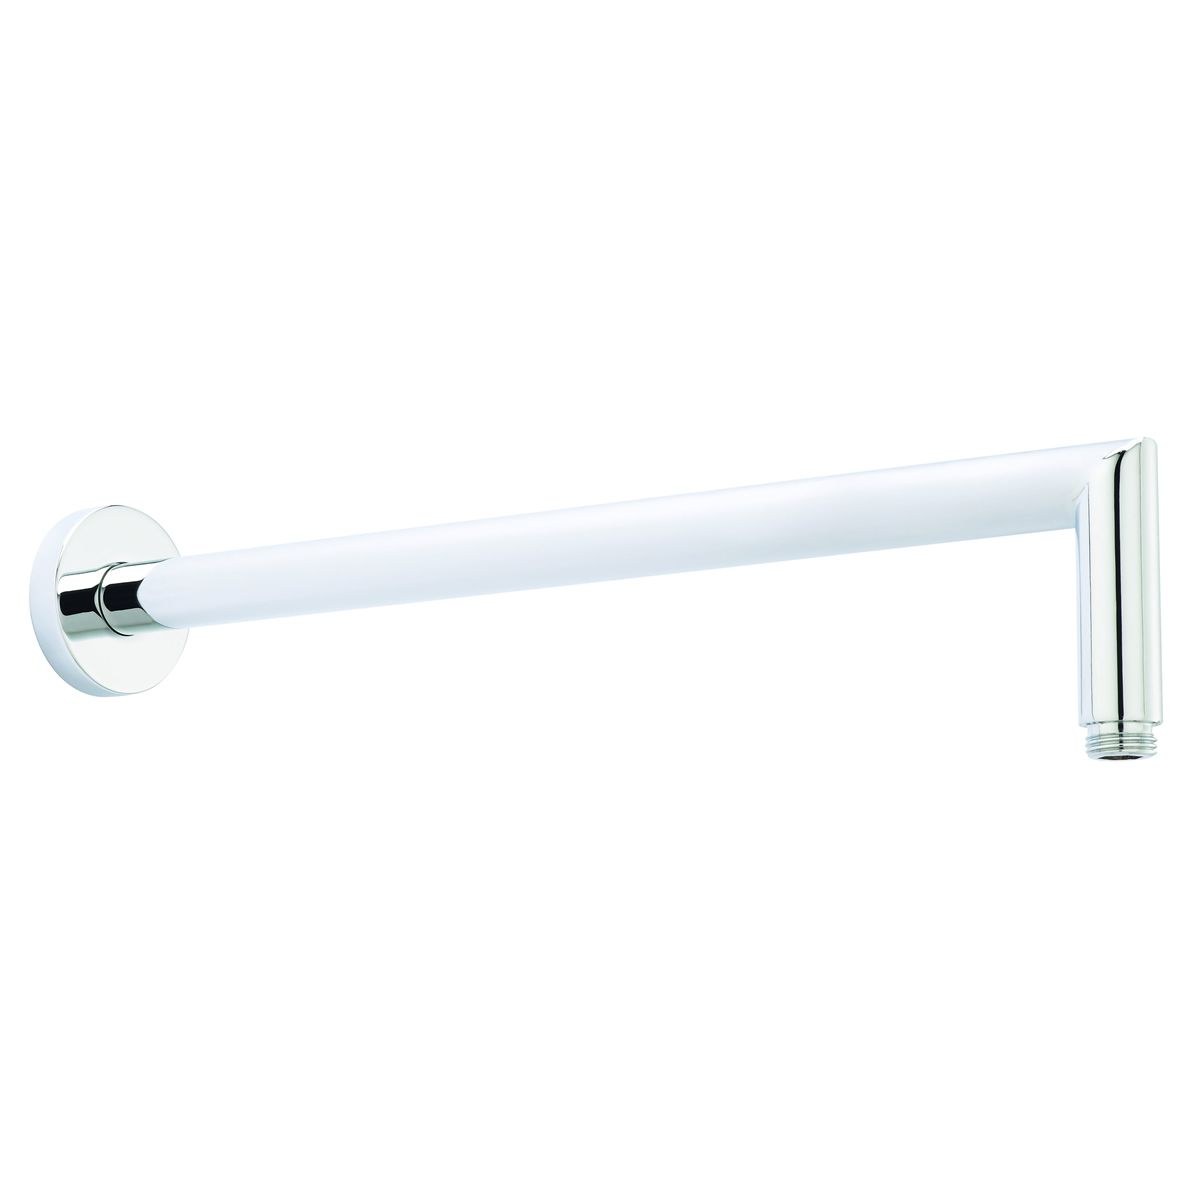 Mitred Wall Mounted Shower Arm 16.3""